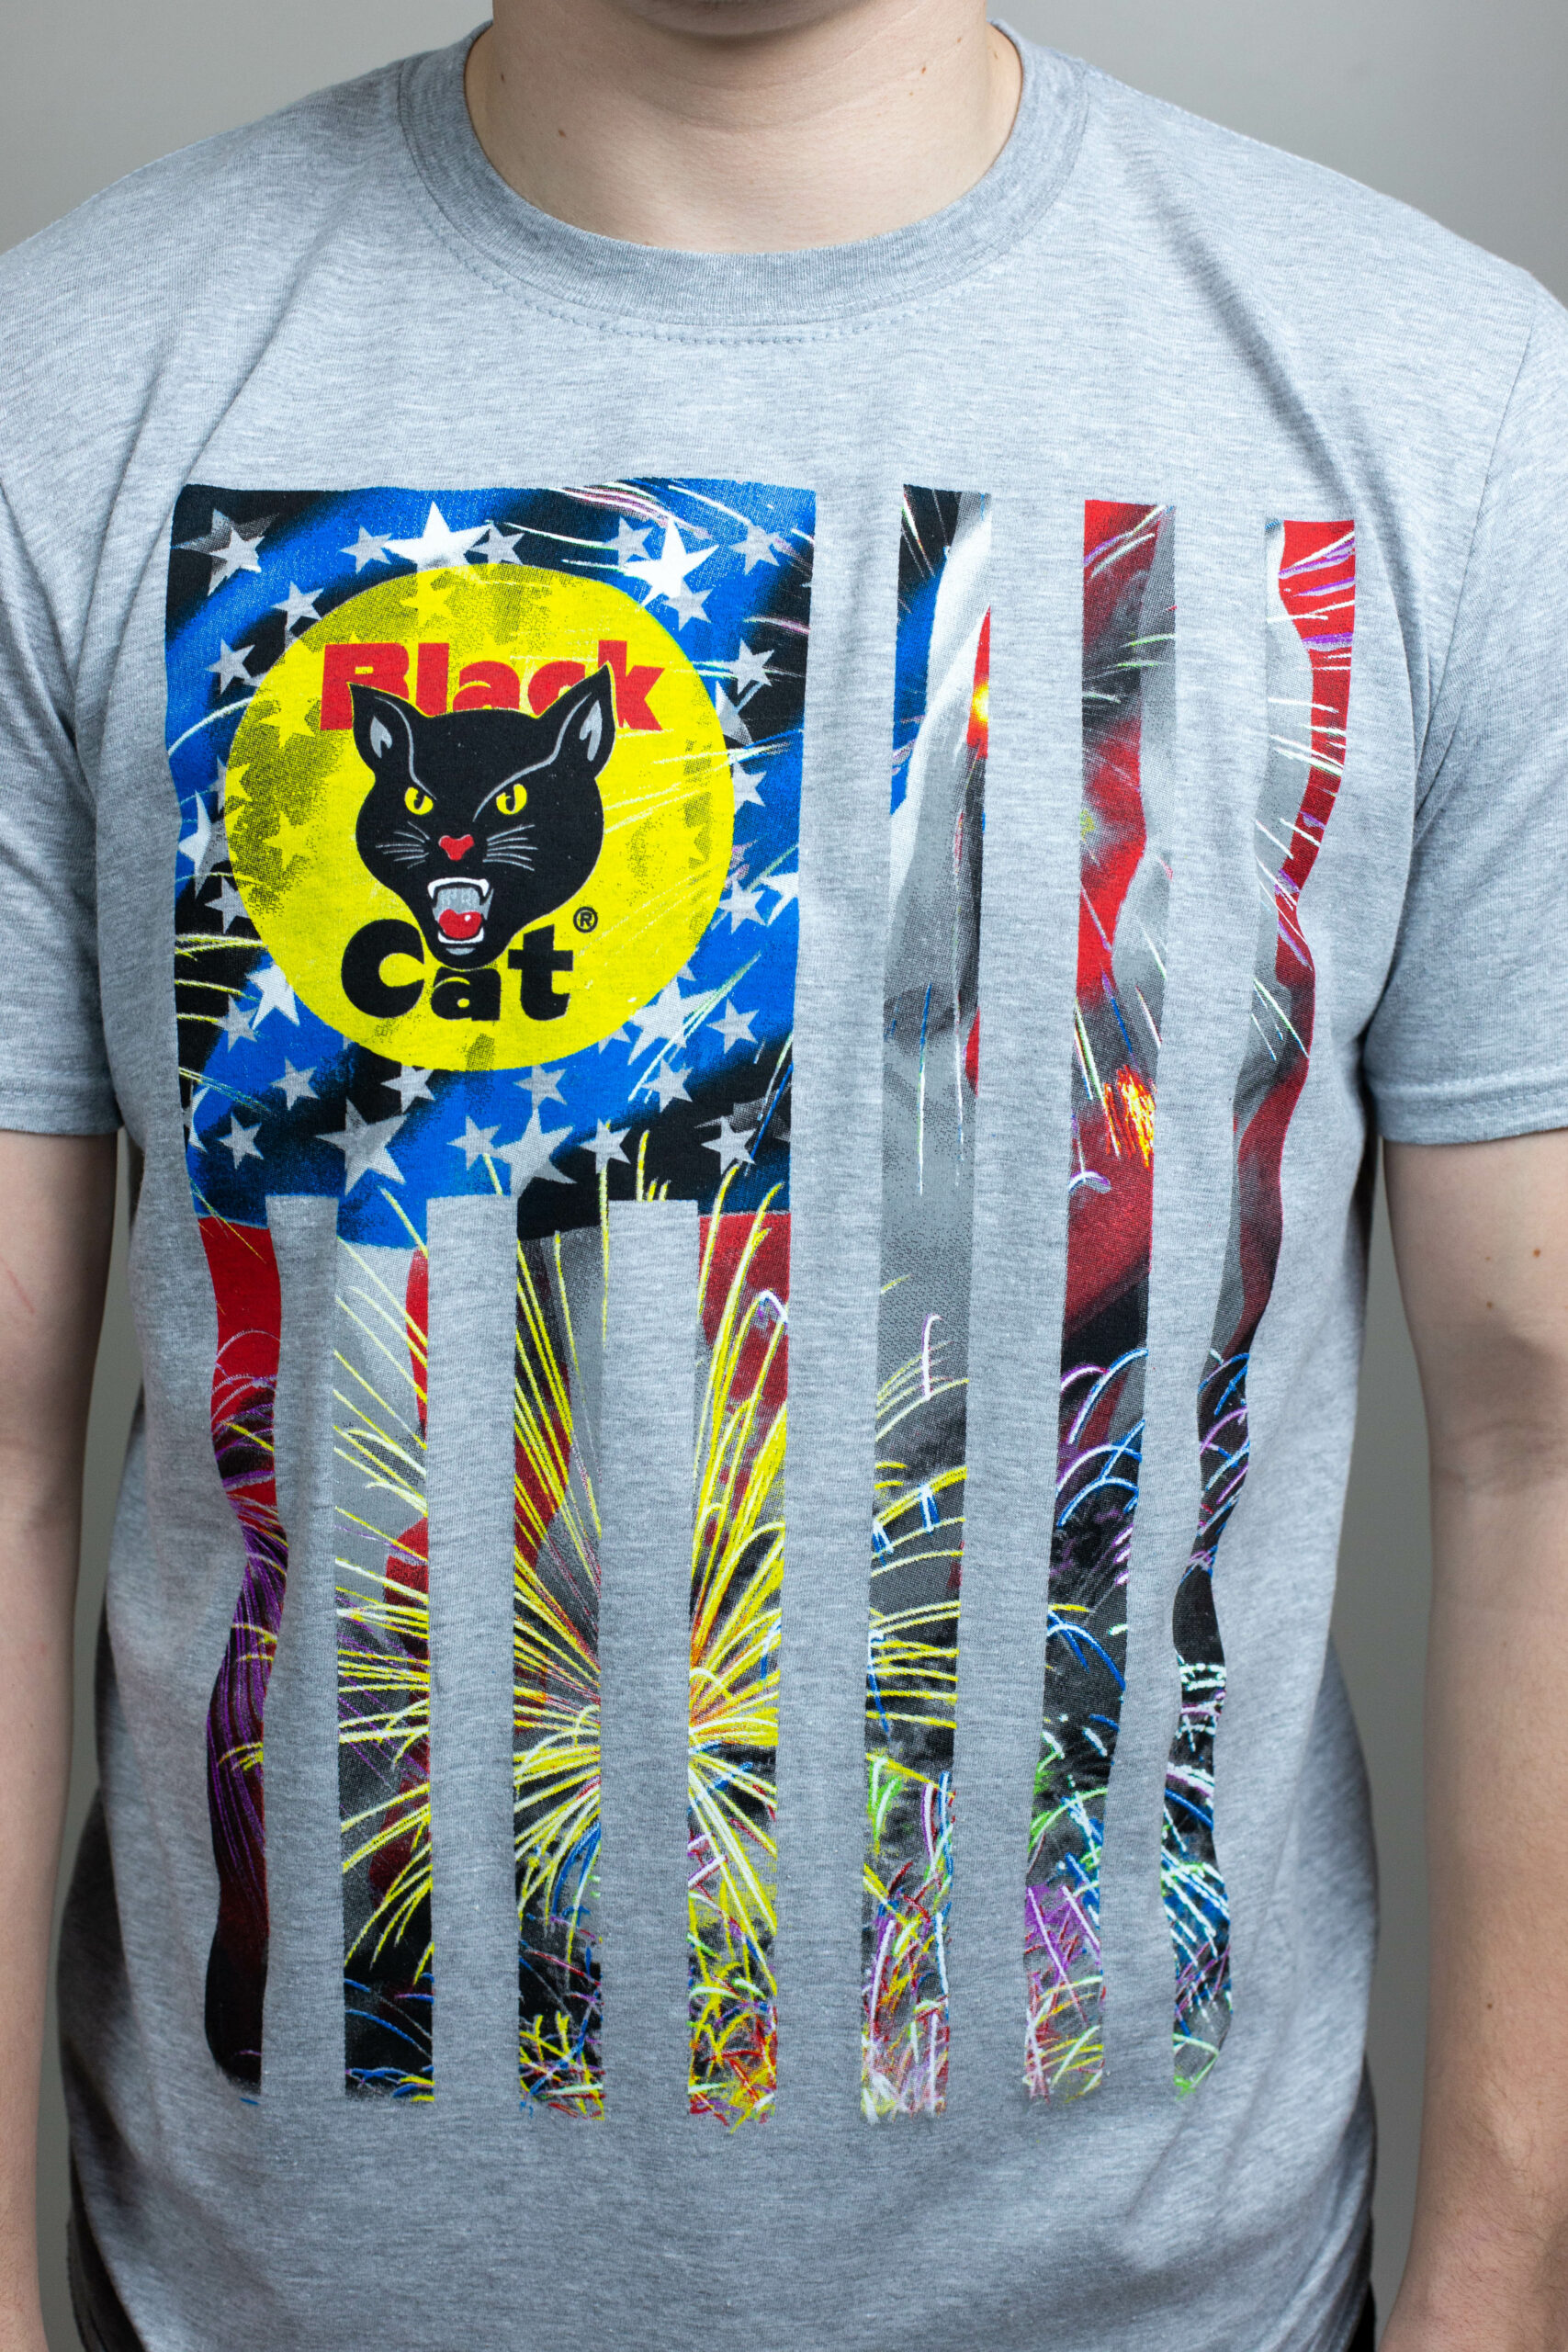 Black Cat Gray Patriotic T-Shirt